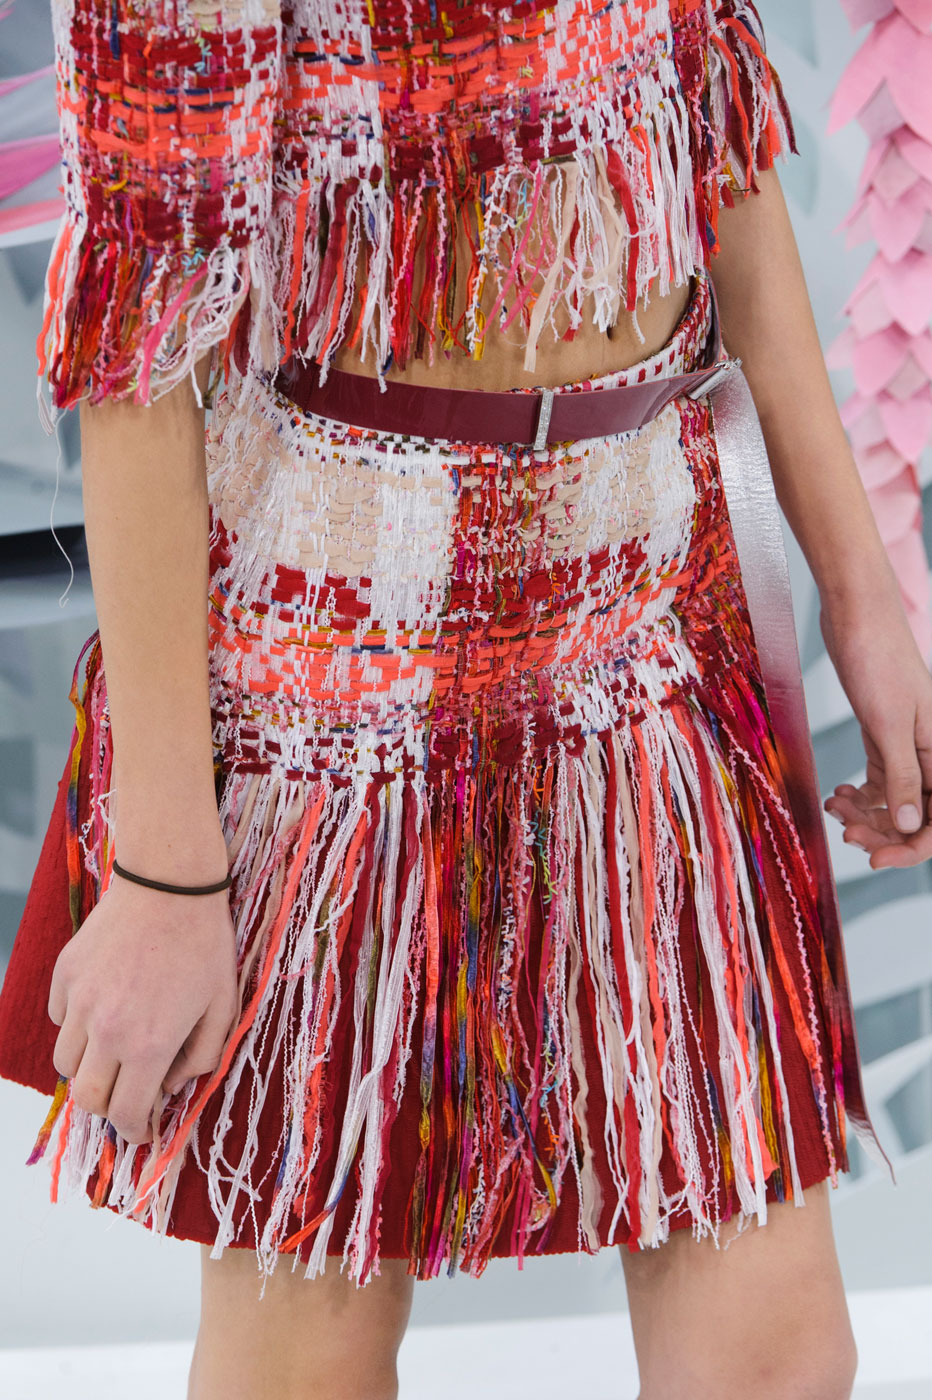 Chanel-fashion-runway-show-close-ups-haute-couture-paris-spring-summer-2015-the-impression-058